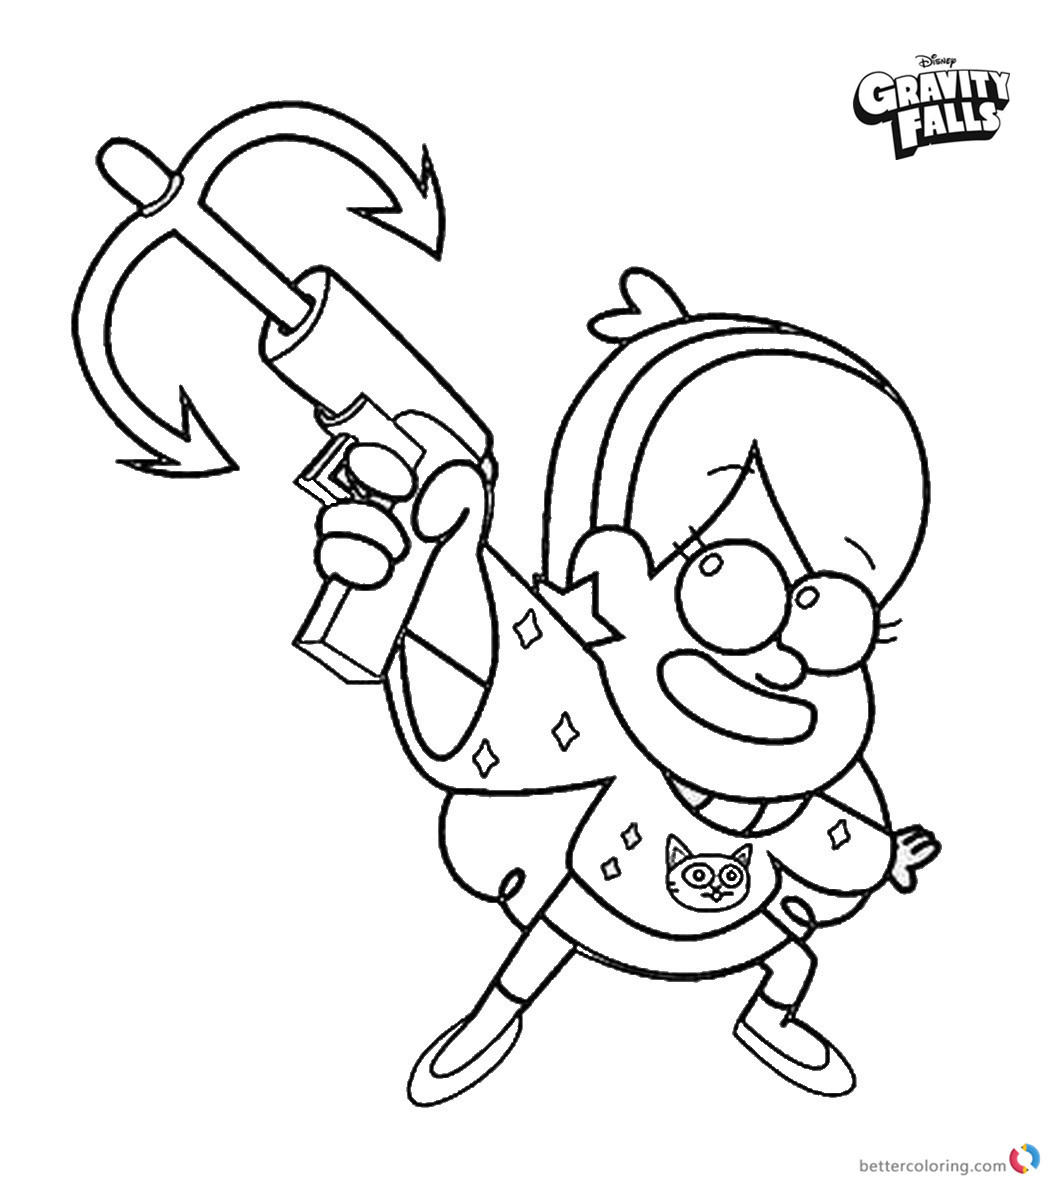 Gravity falls coloring pages Mabel Ready to Shot printable